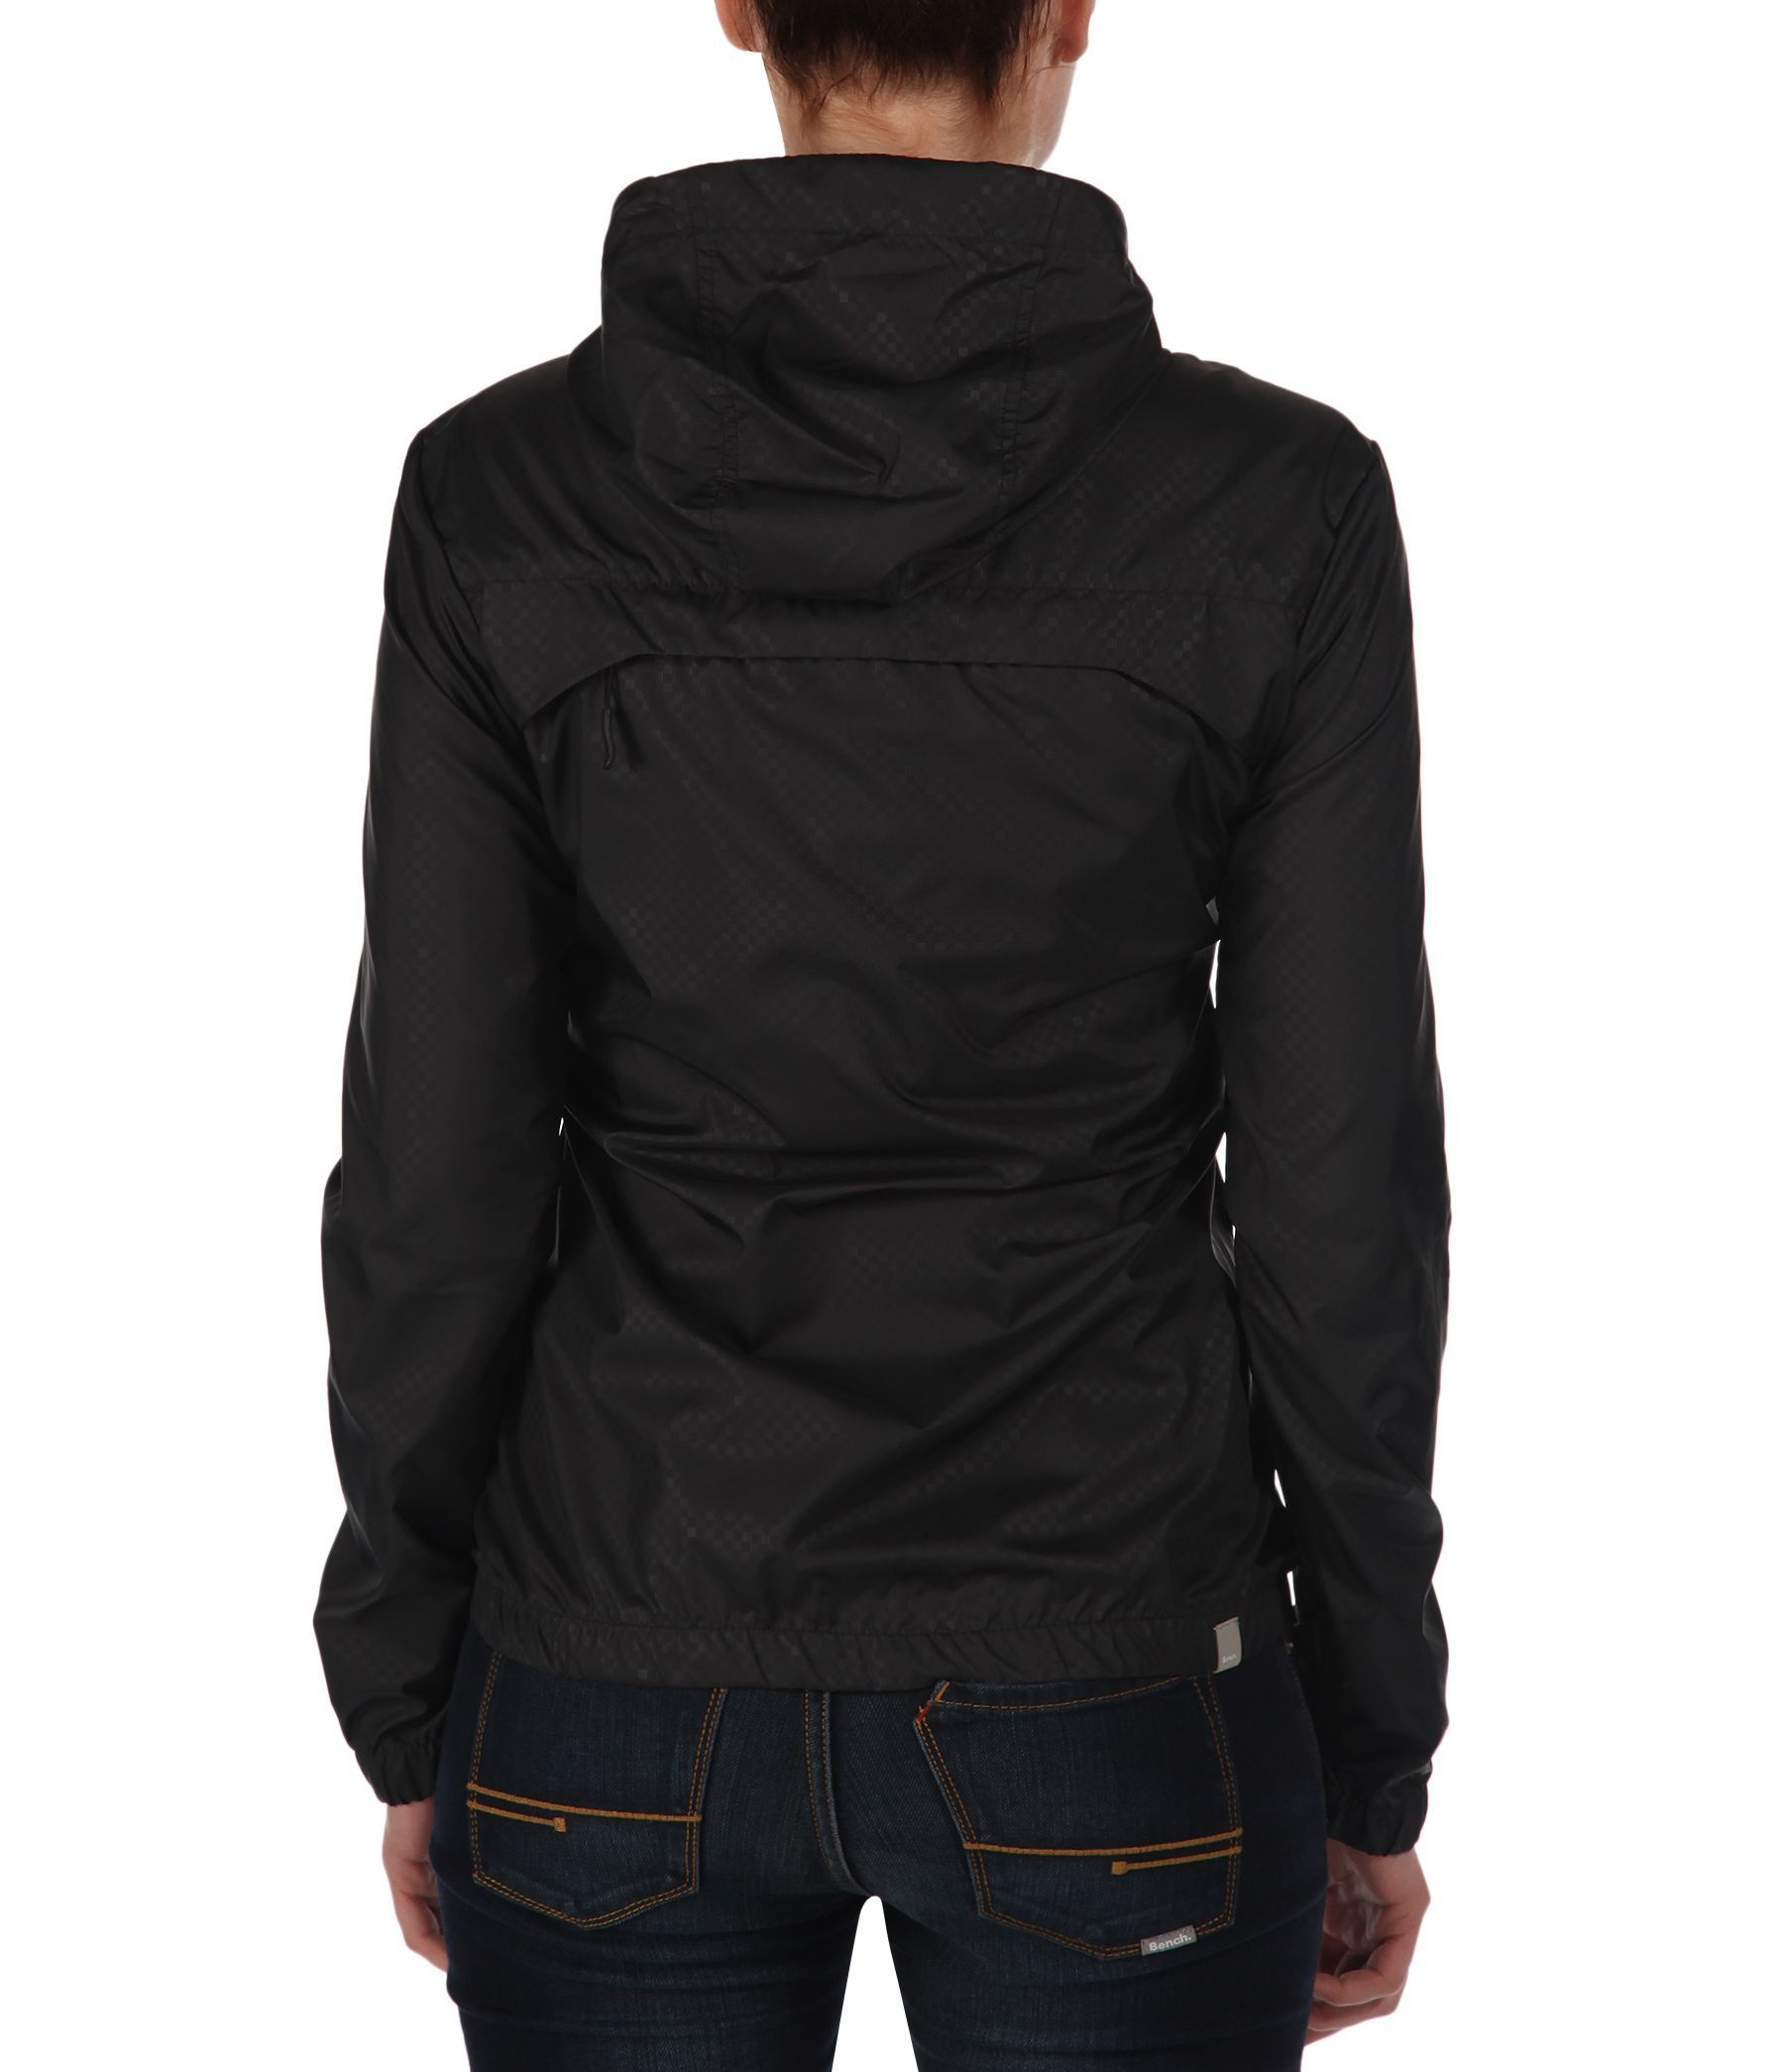 Bench retrocag ii c hooded packaway jacket in black lyst Bench jacket